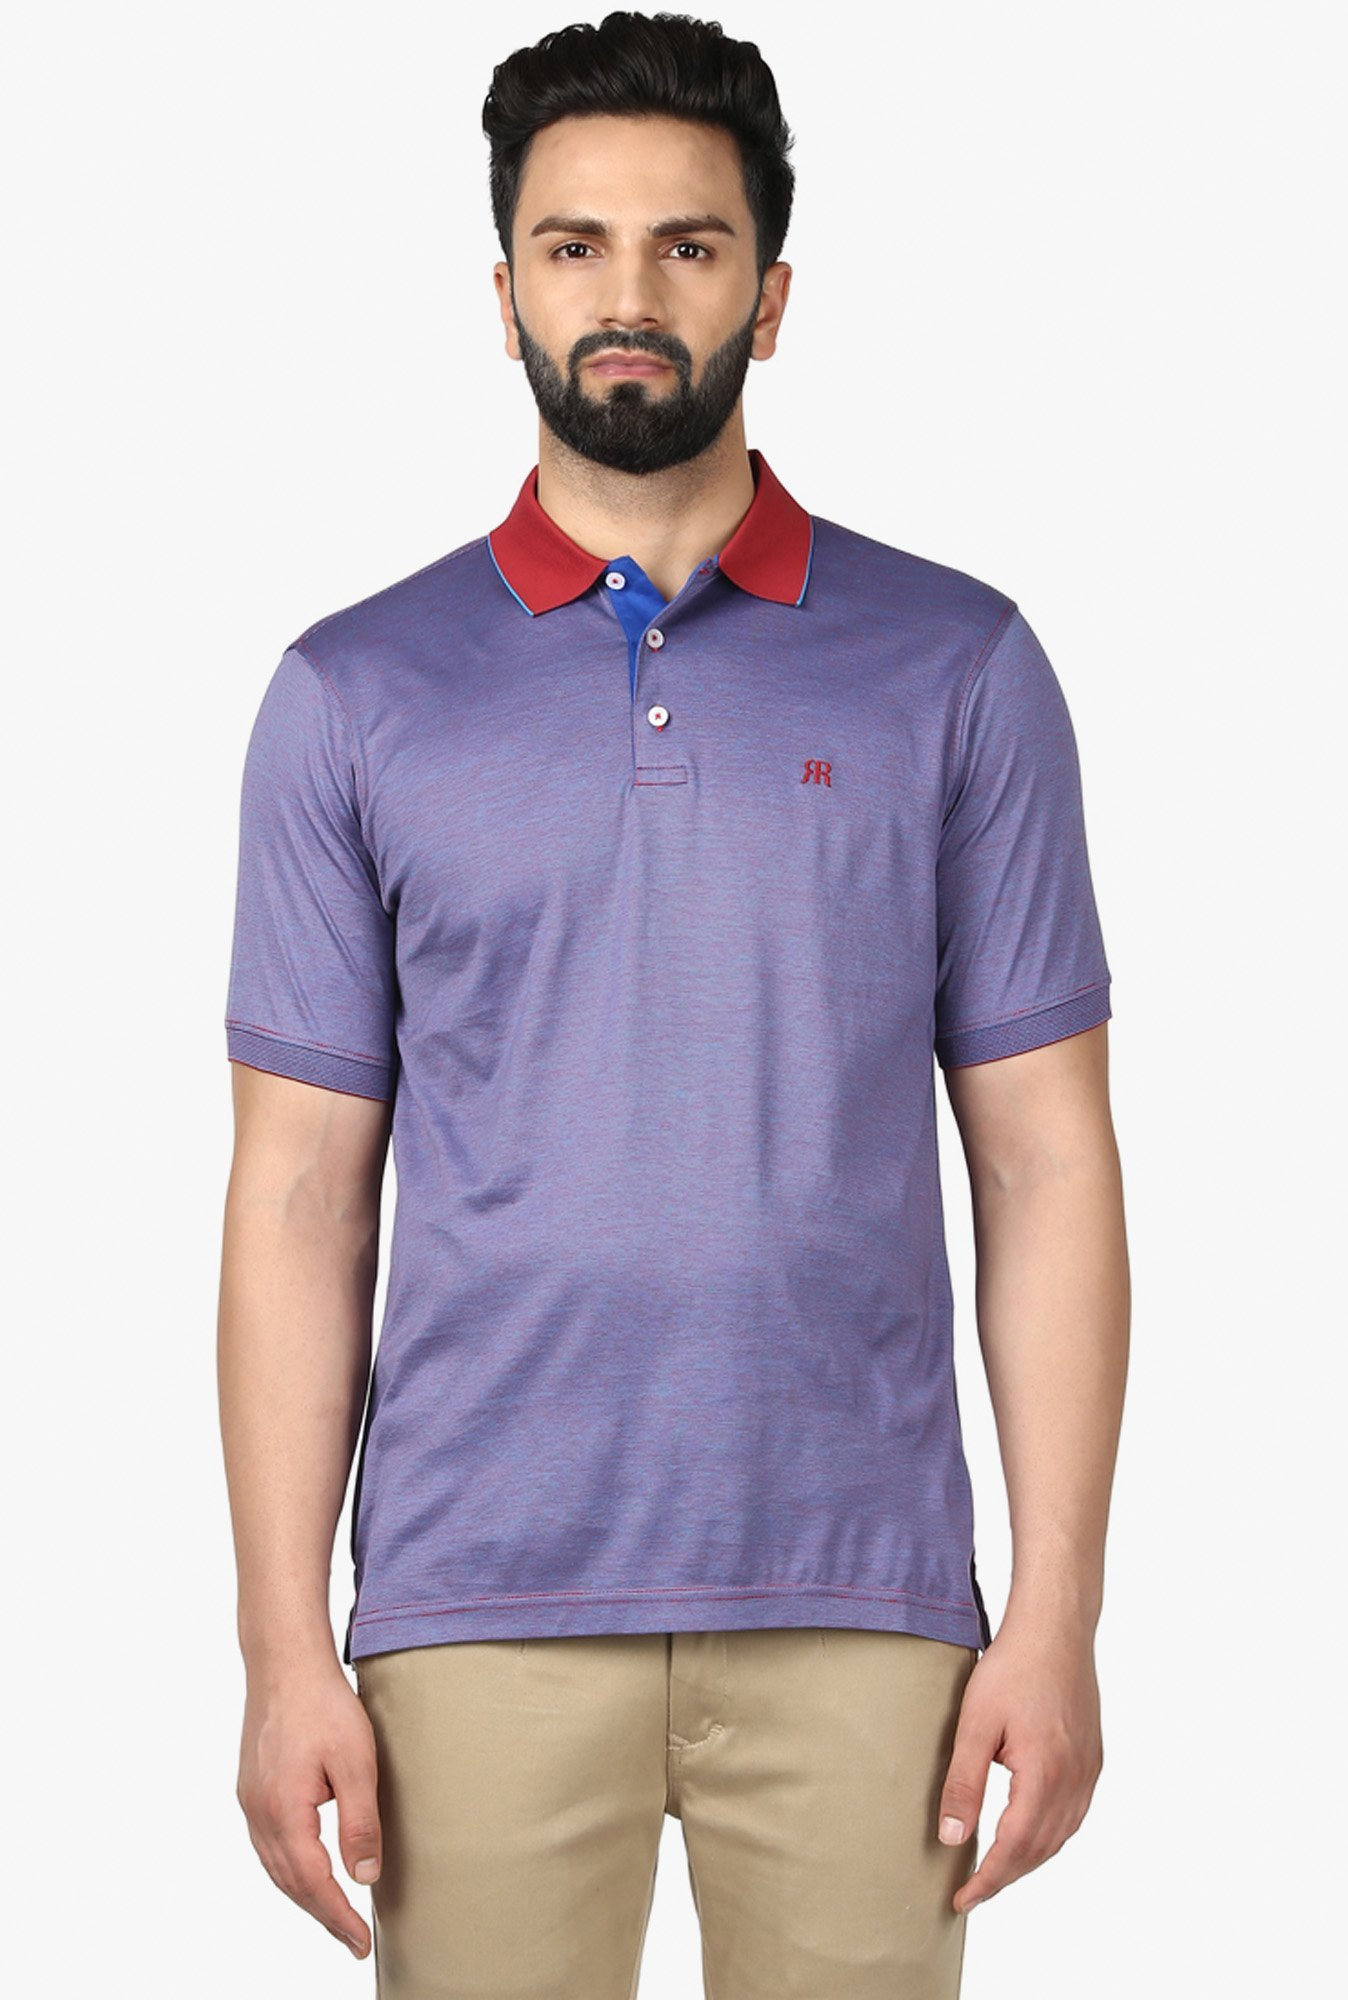 Raymond Purple Half Sleeves Striped T-Shirt